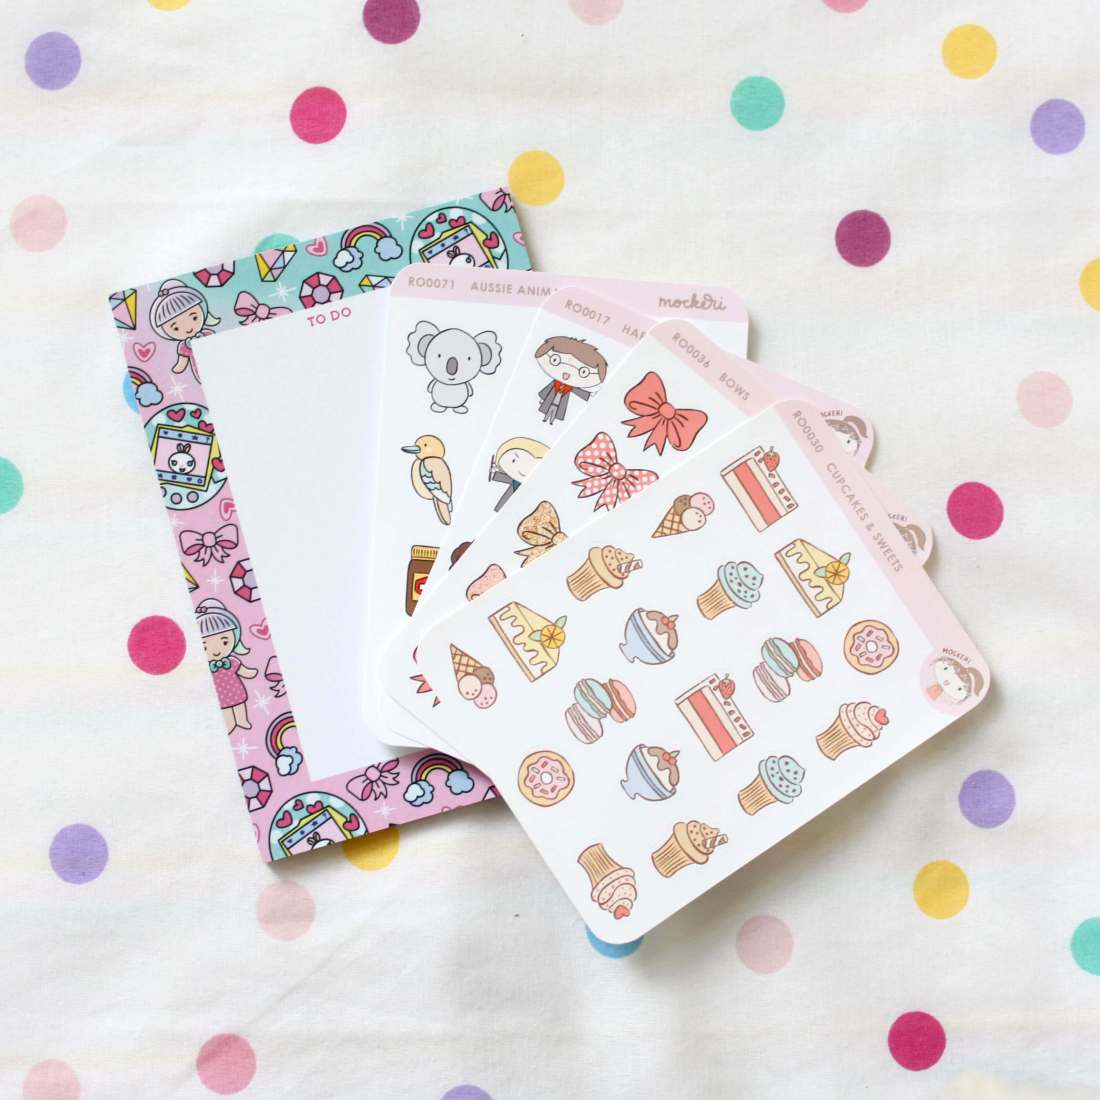 Sticker set and note pad by Mockeri